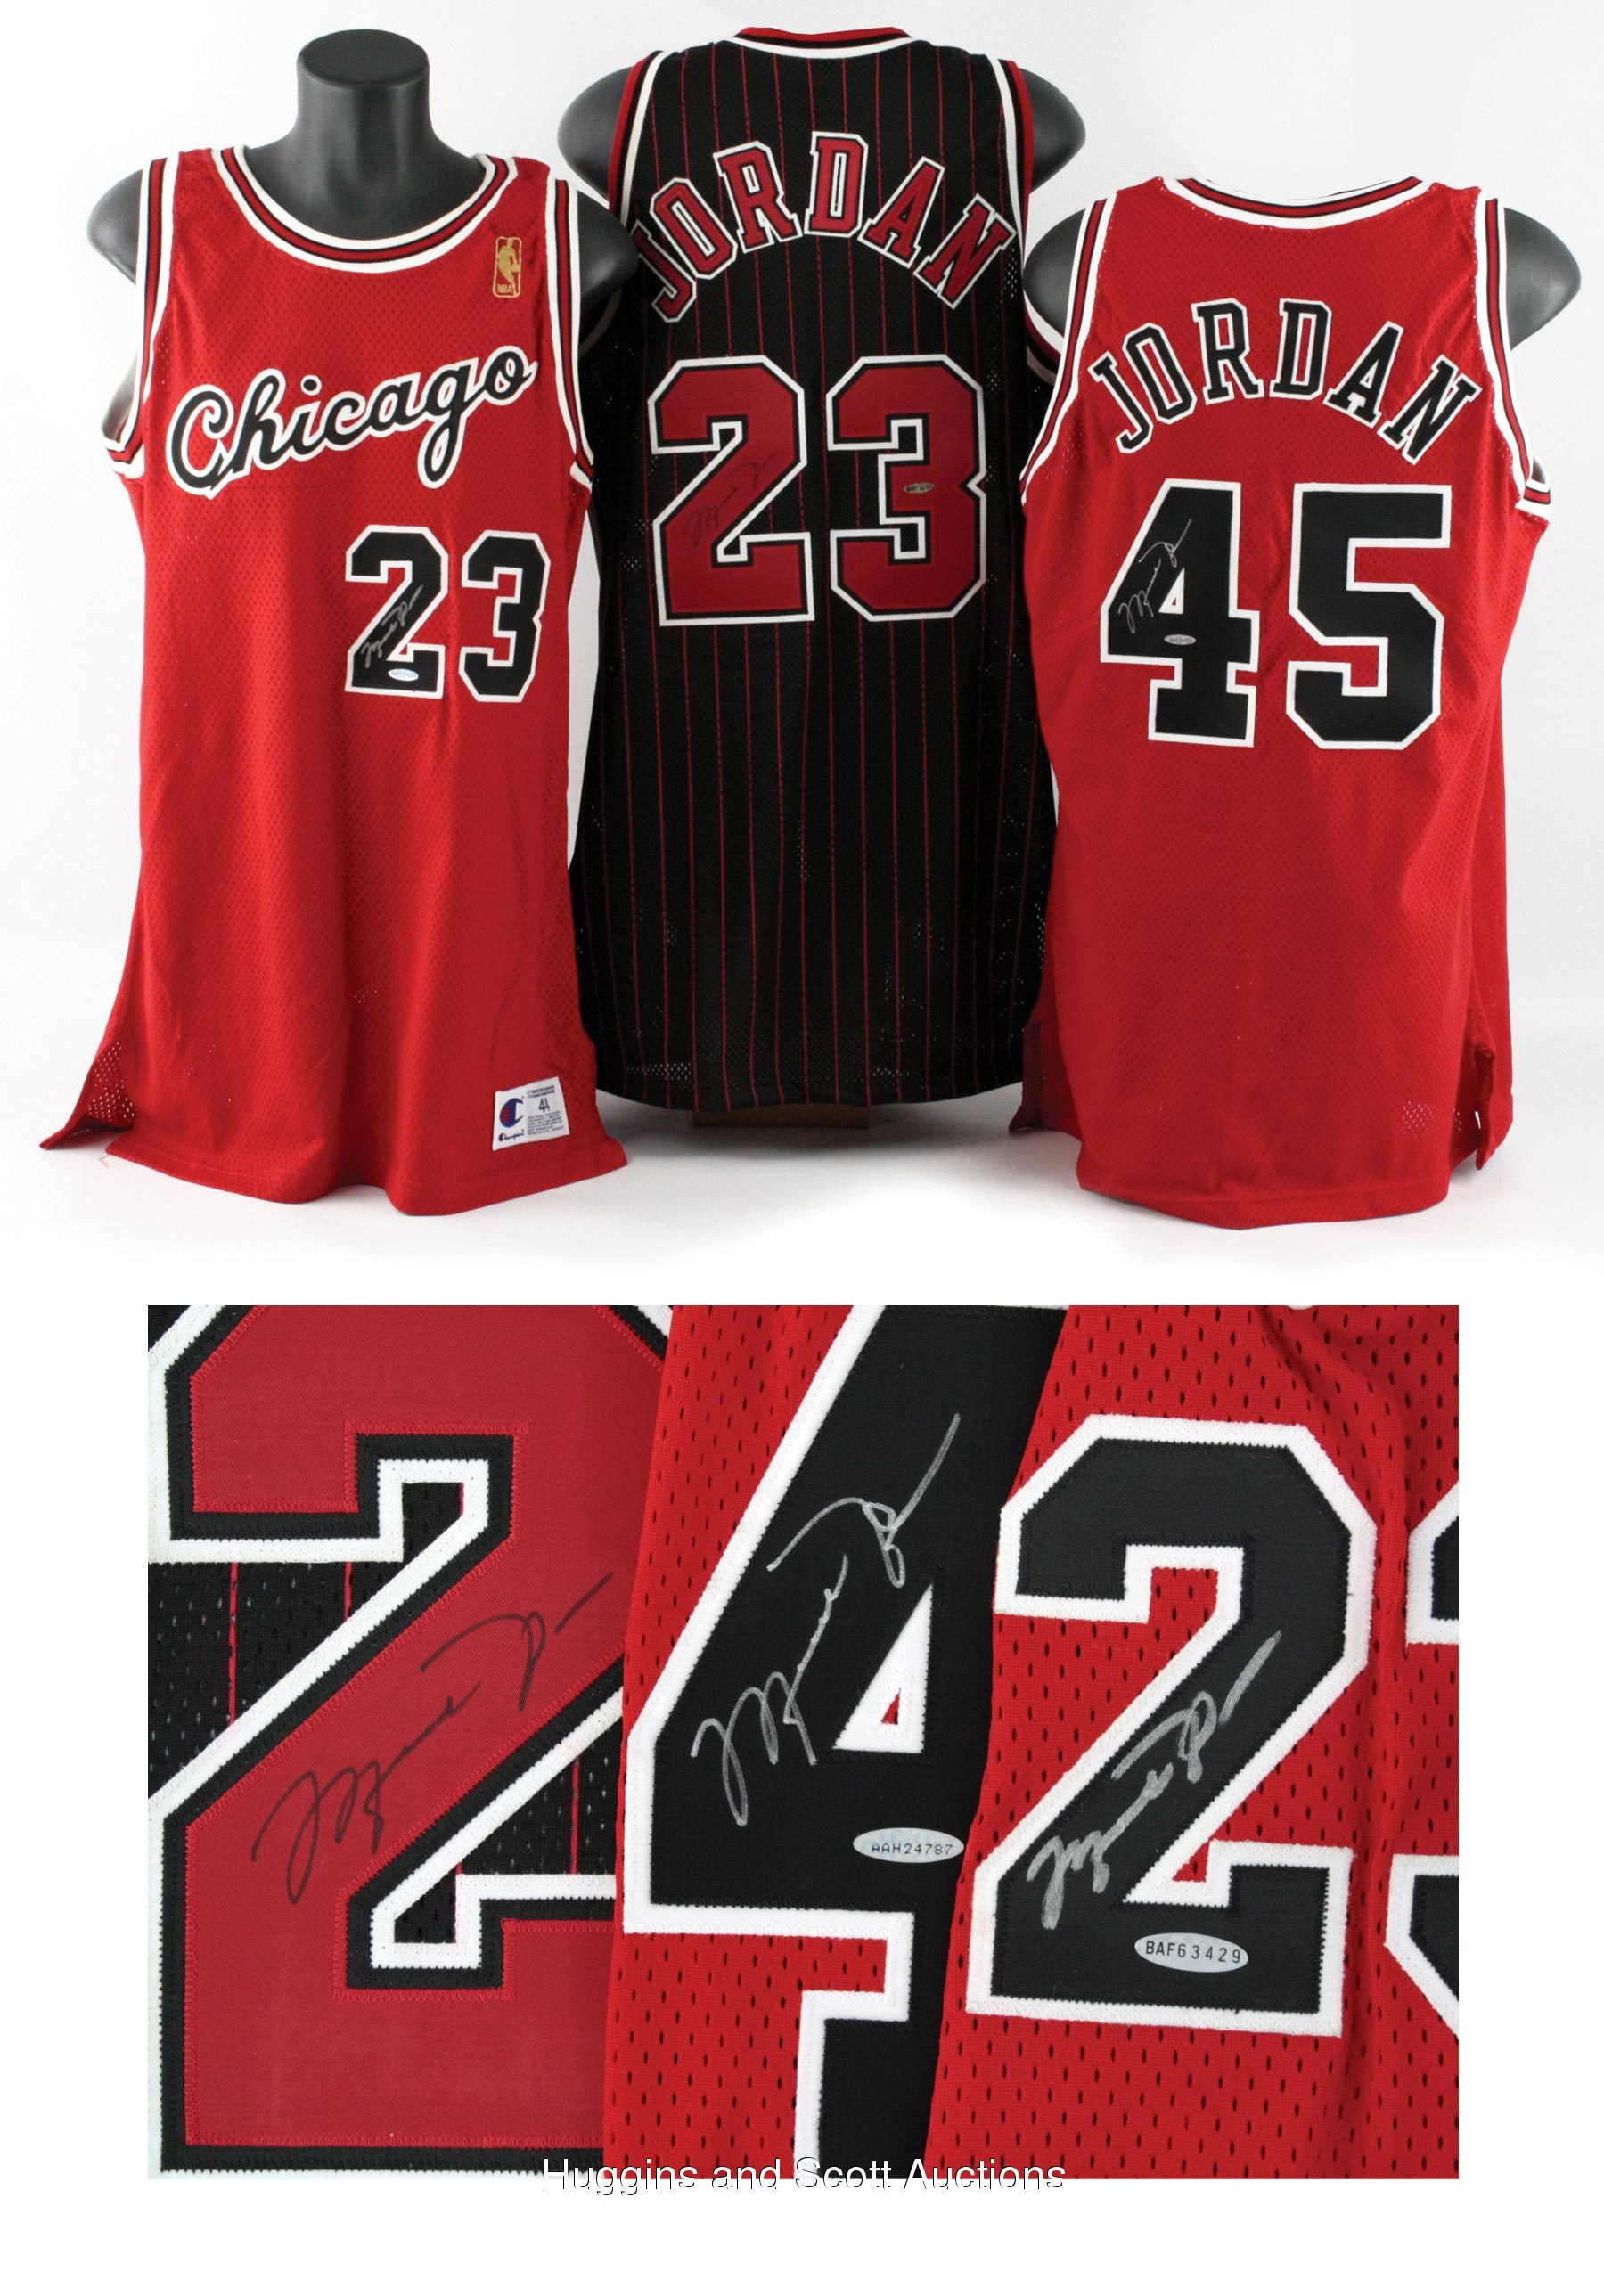 iblsmu 3) Autographed Michael Jordan Jerseys with Comeback Jersey